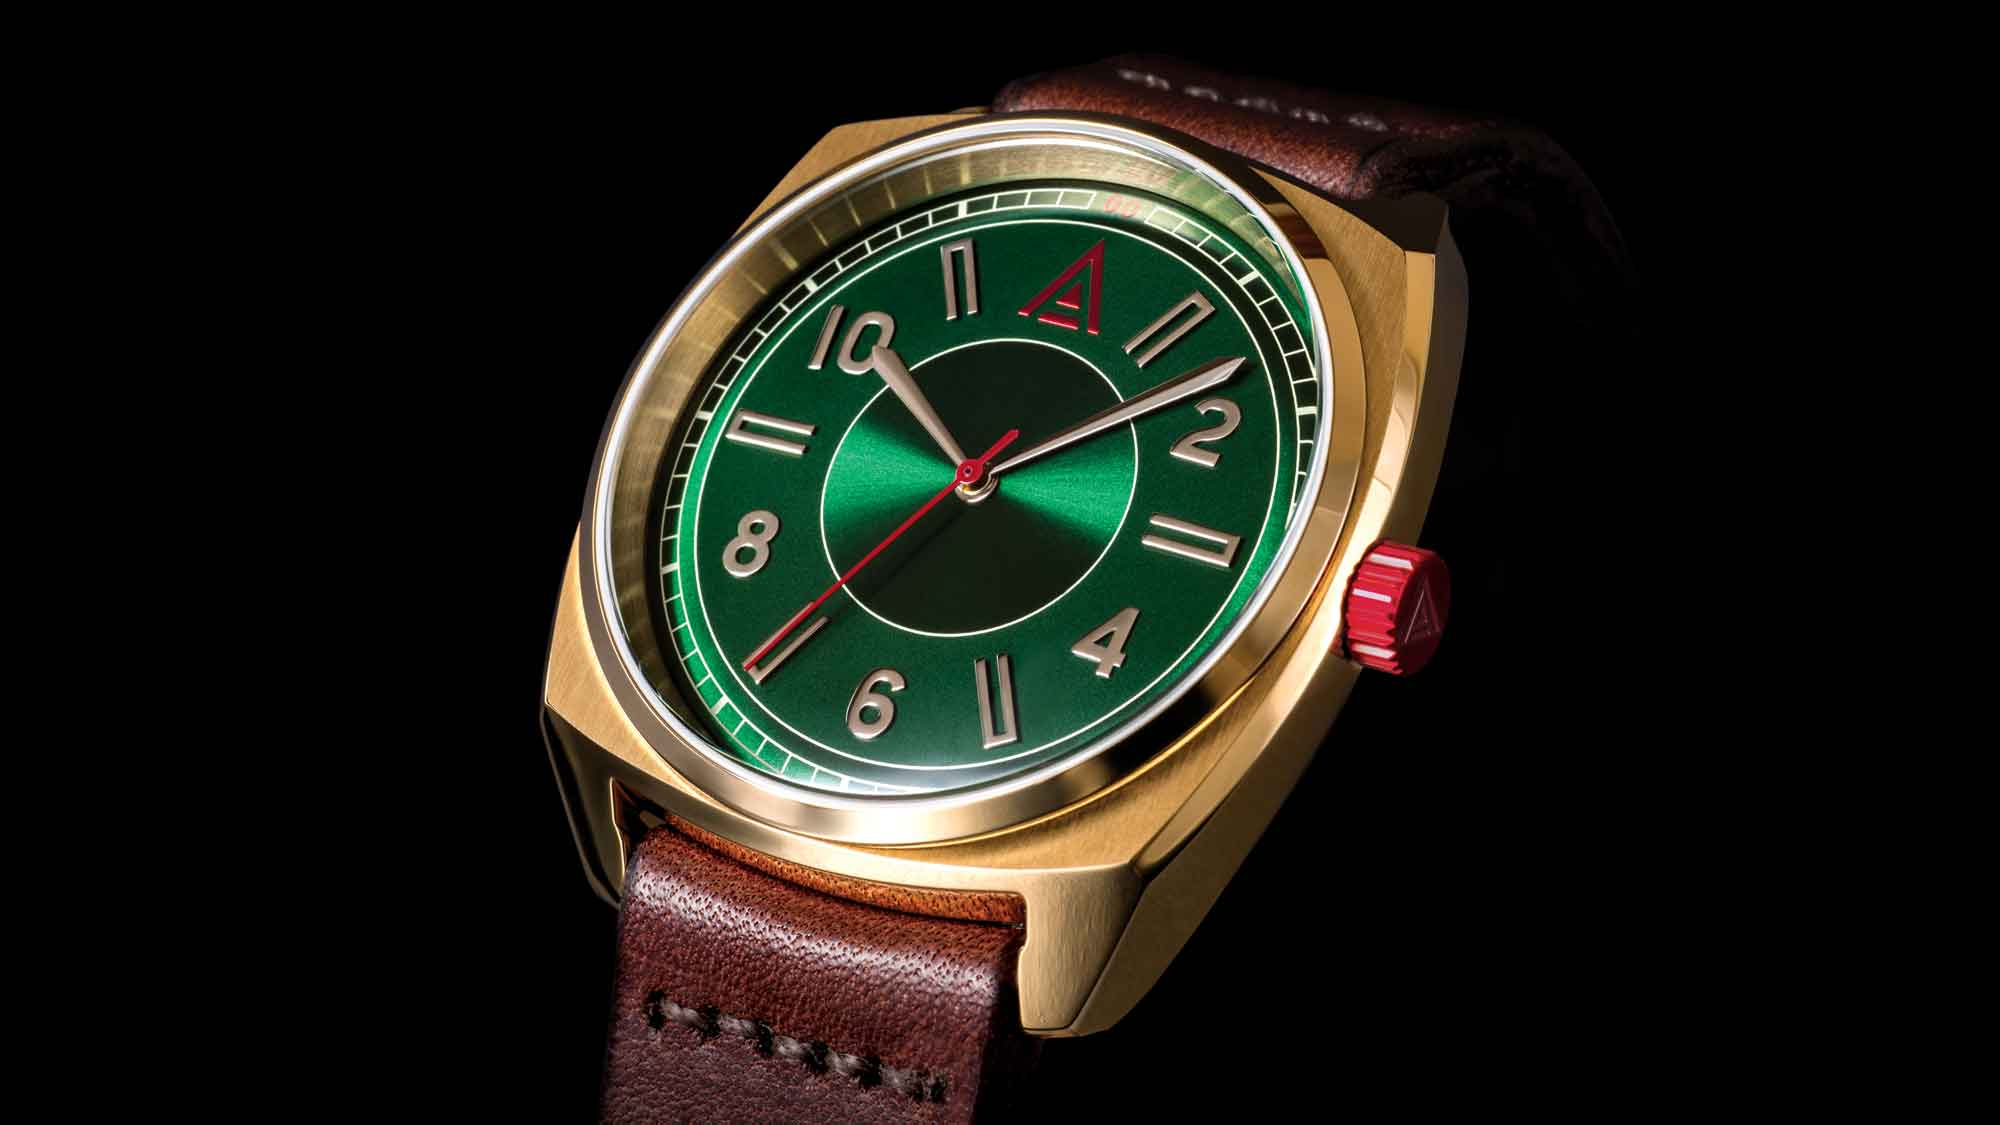 classic timepieces watch no 1934 green wt author hero